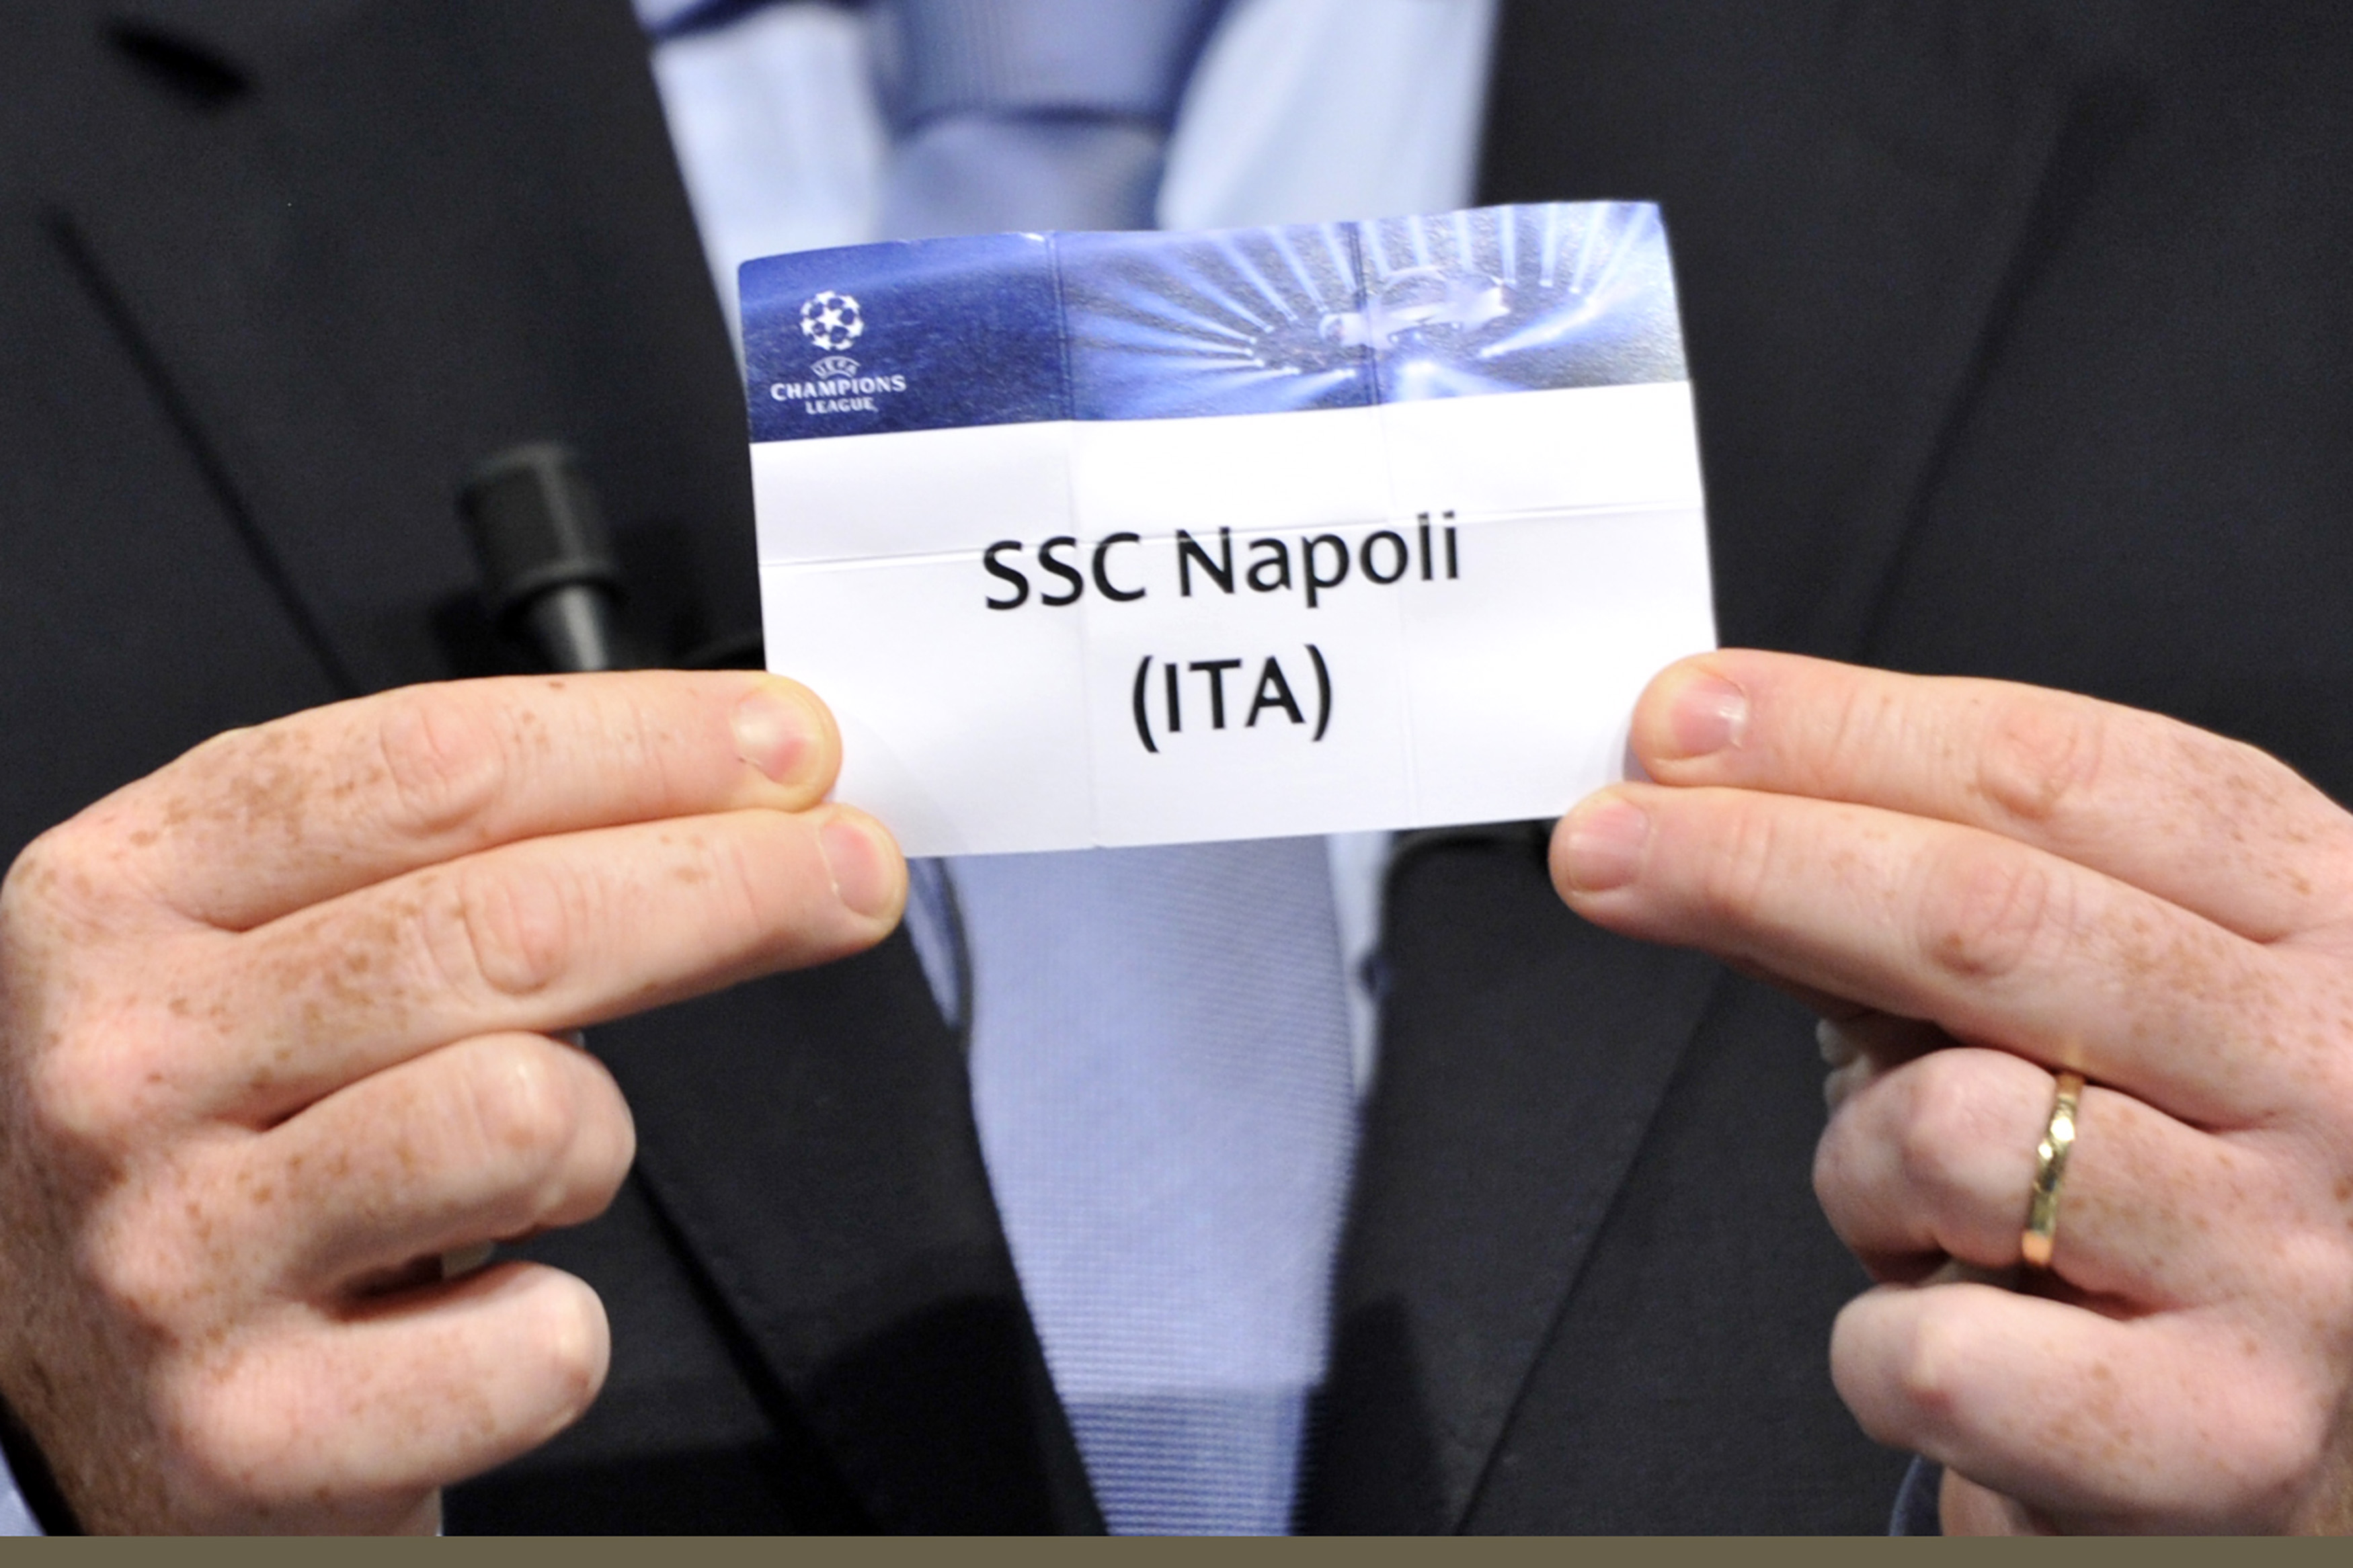 UEFA Champions League and UEFA Europa League - Play-off Round Draw